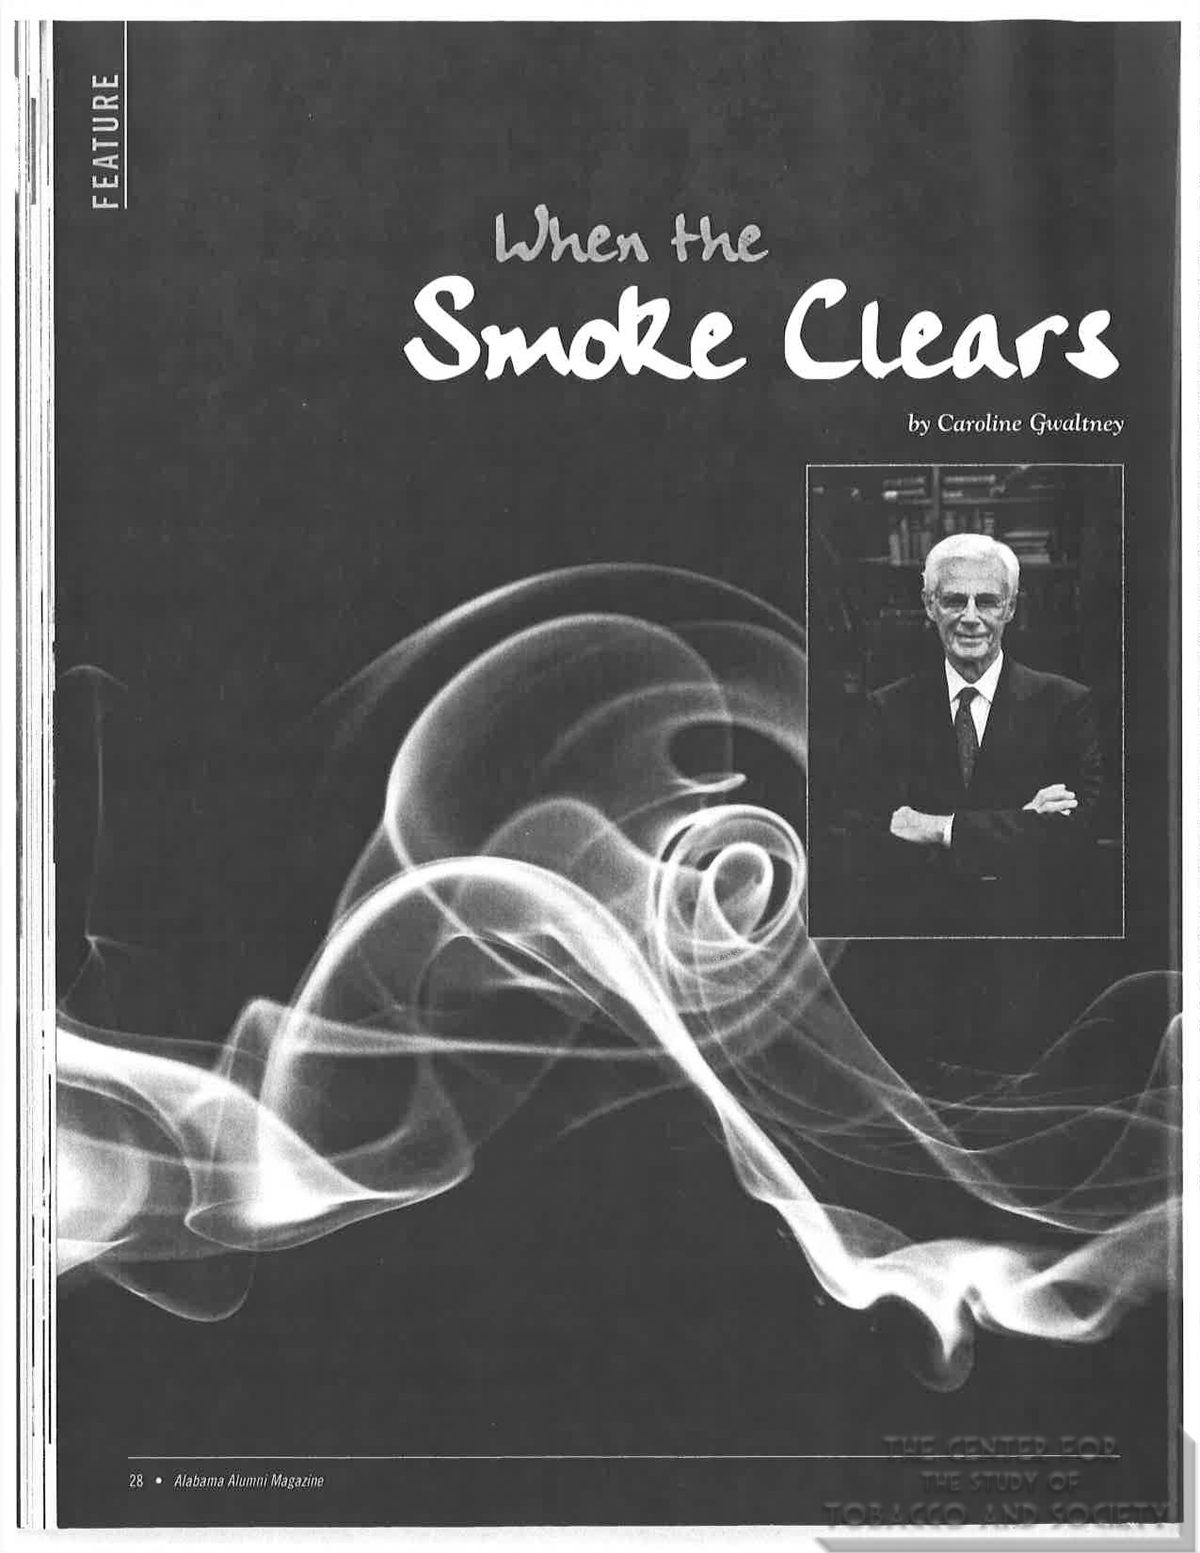 2007 Alabama Alumni Magazine When the Smoke Clears